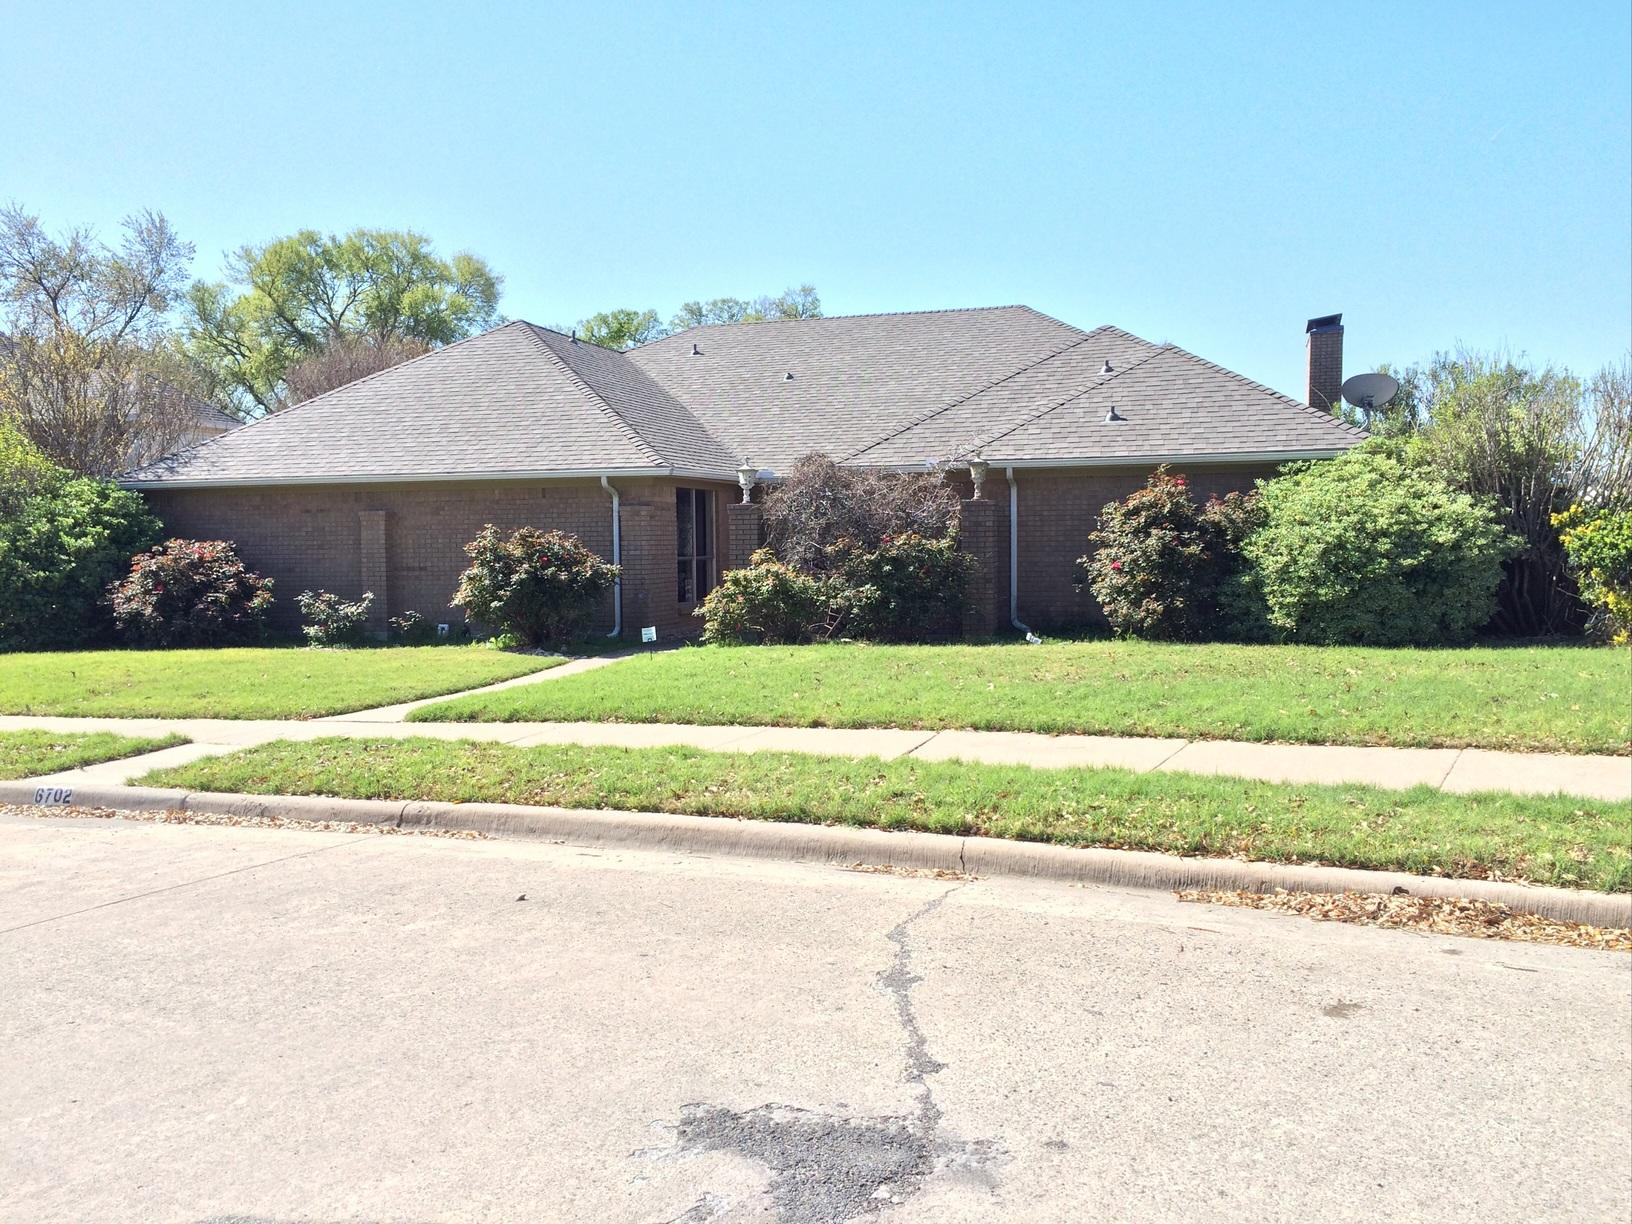 Roof Replacement in Rowlett TX - After Photo